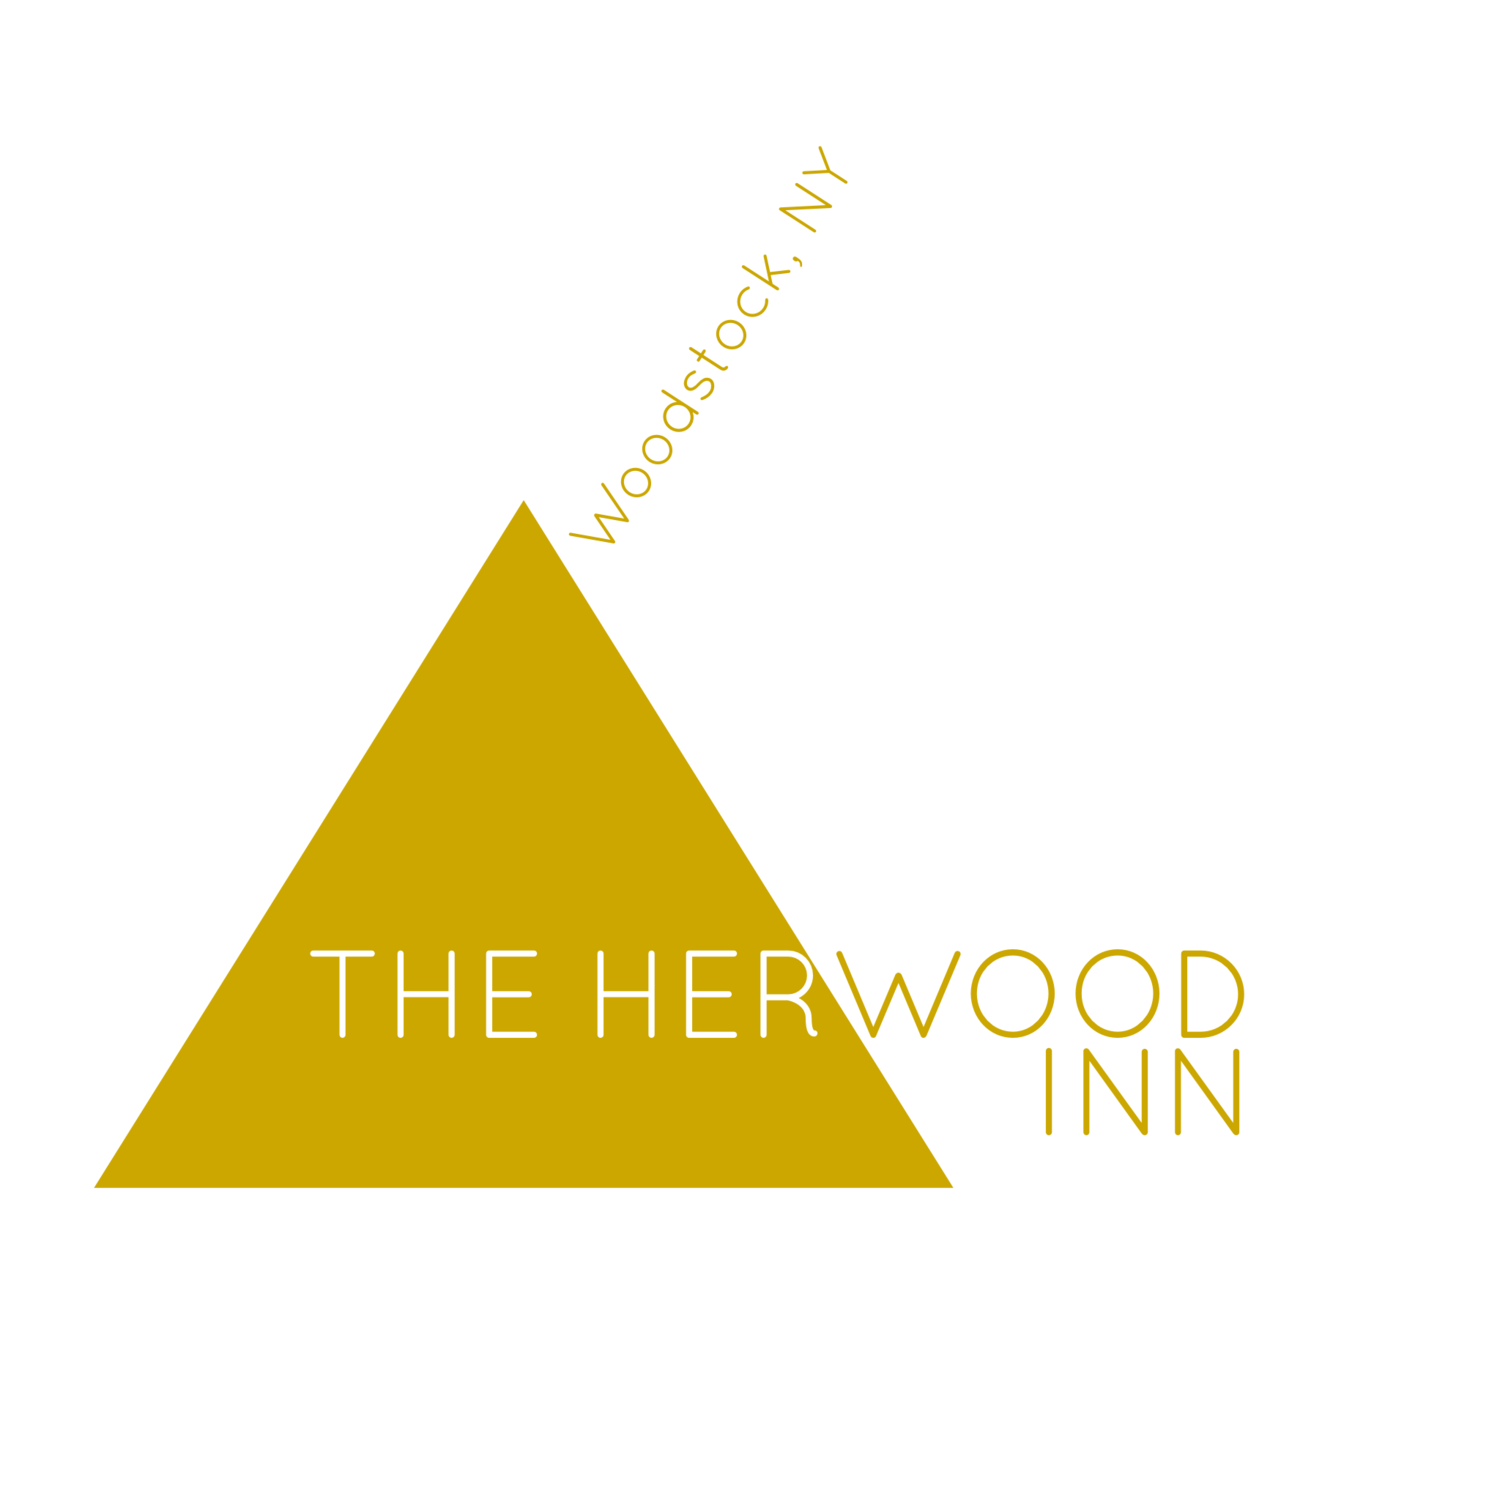 The Herwood inn